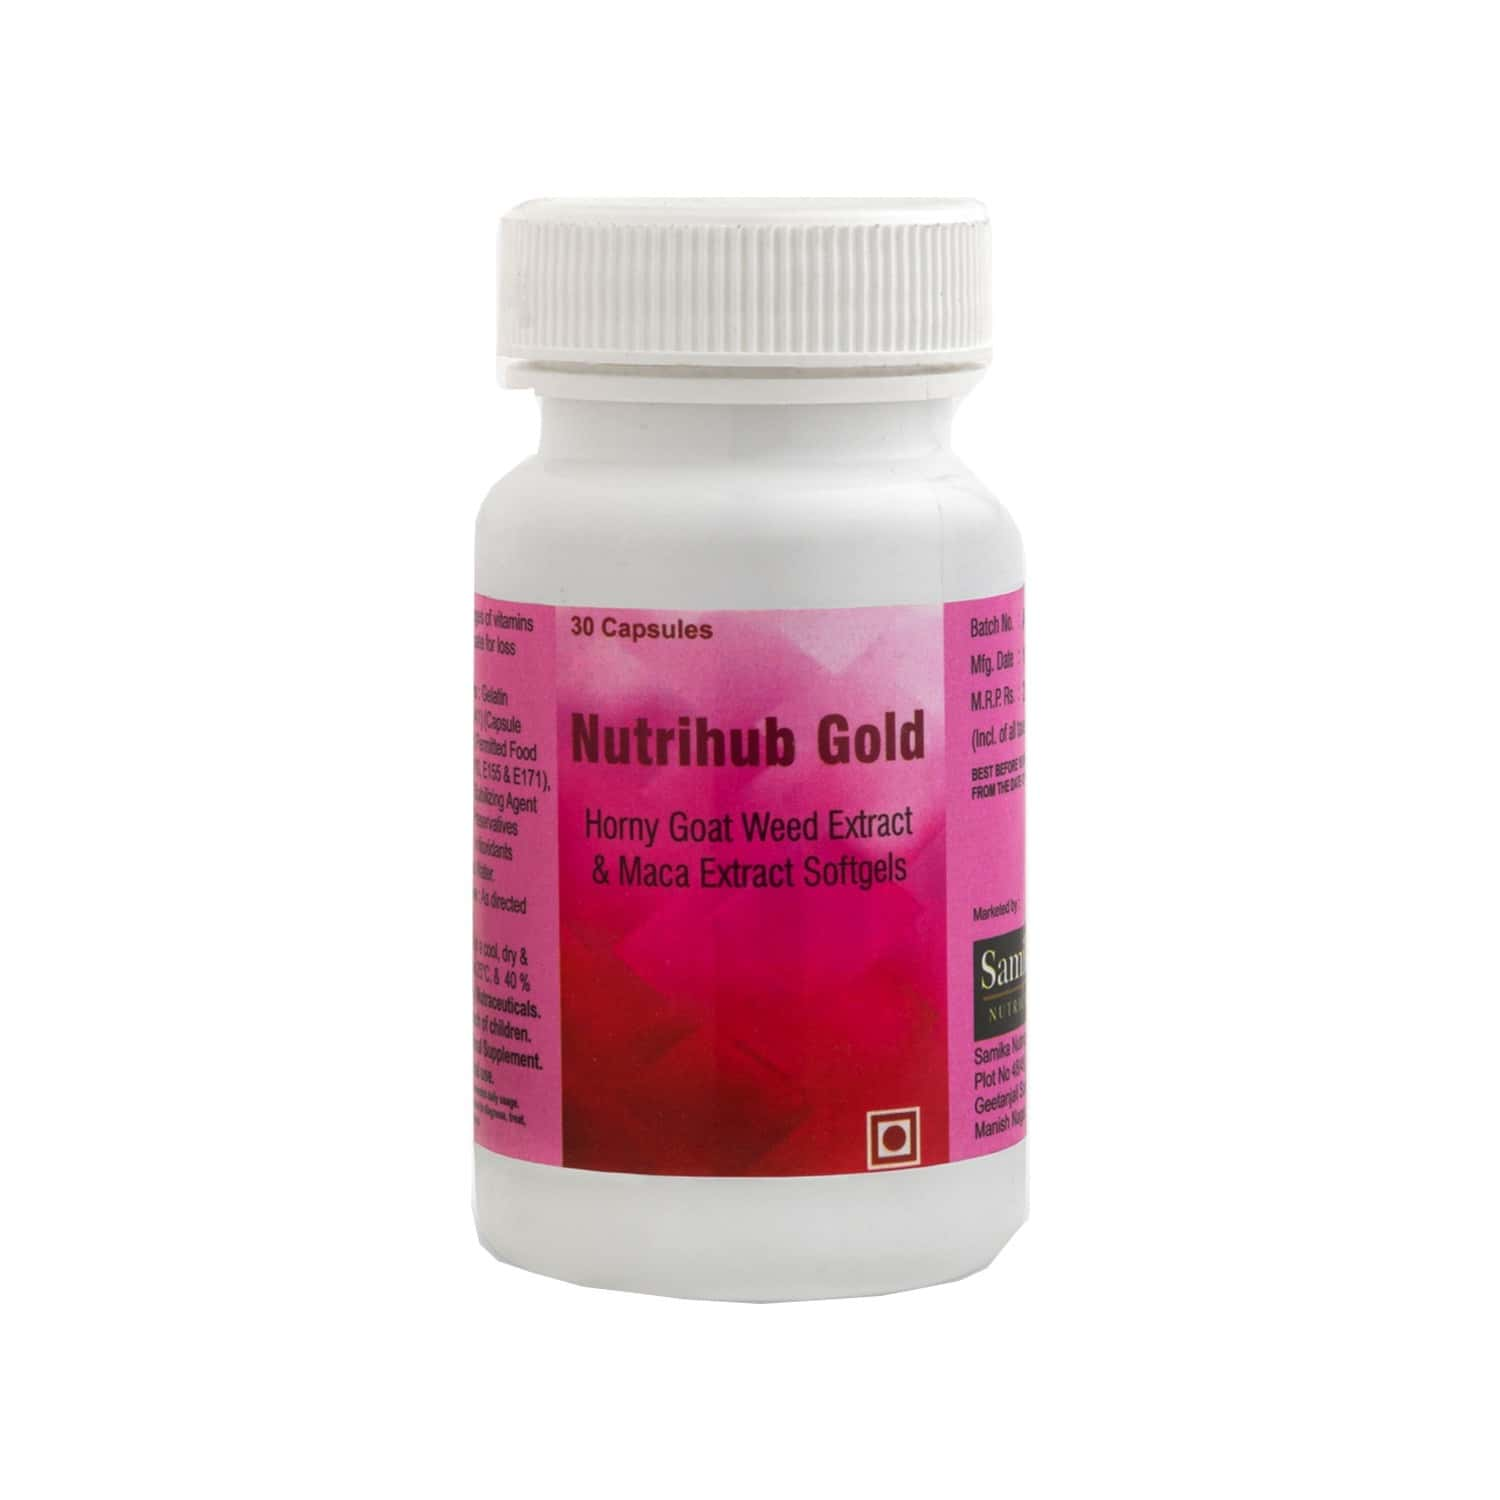 Nutrihub Gold Horny Goat Weed Extract And Maca Extract Softgels - 30 Capsules